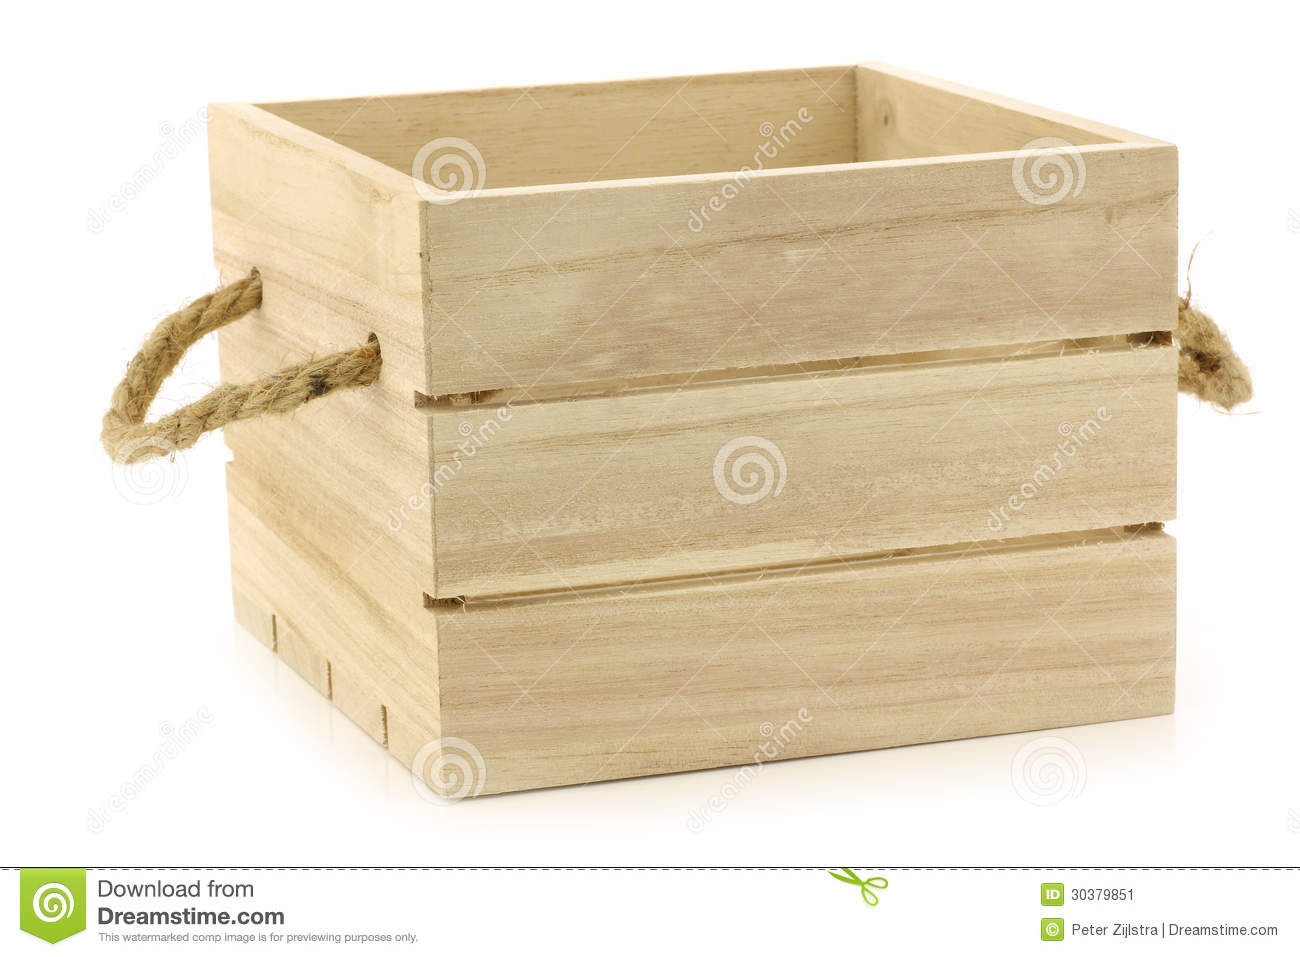 Wooden Crate With Handles Wooden Crate With Rope Handles Stock Image Image 30379851